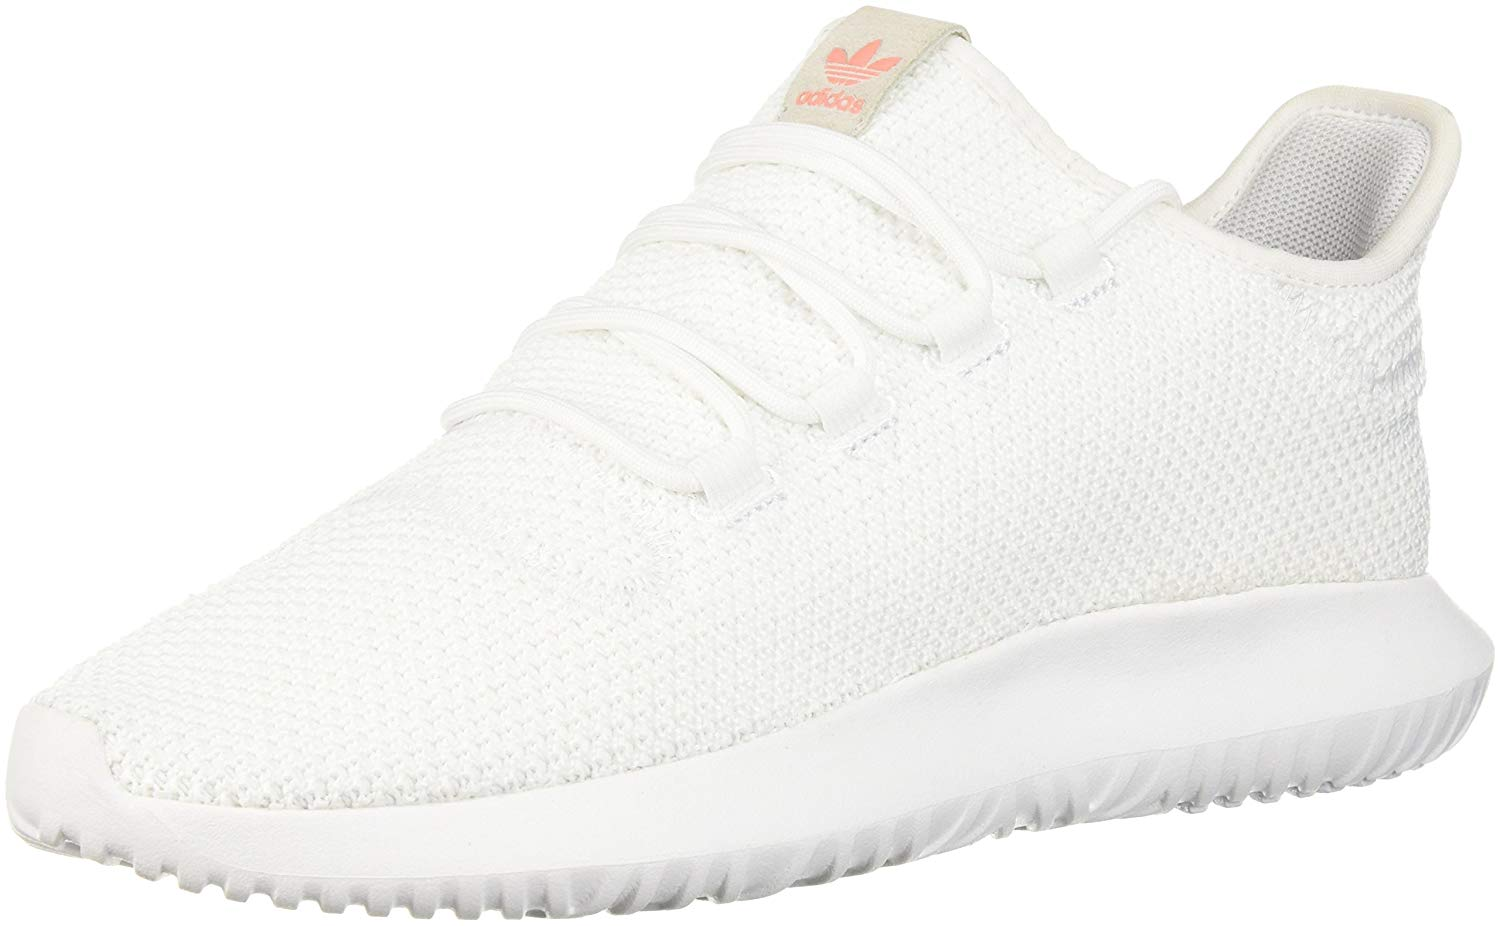 Details about adidas Originals Womens Tubular Shadow Casual Shoes AC8334 230d7644f